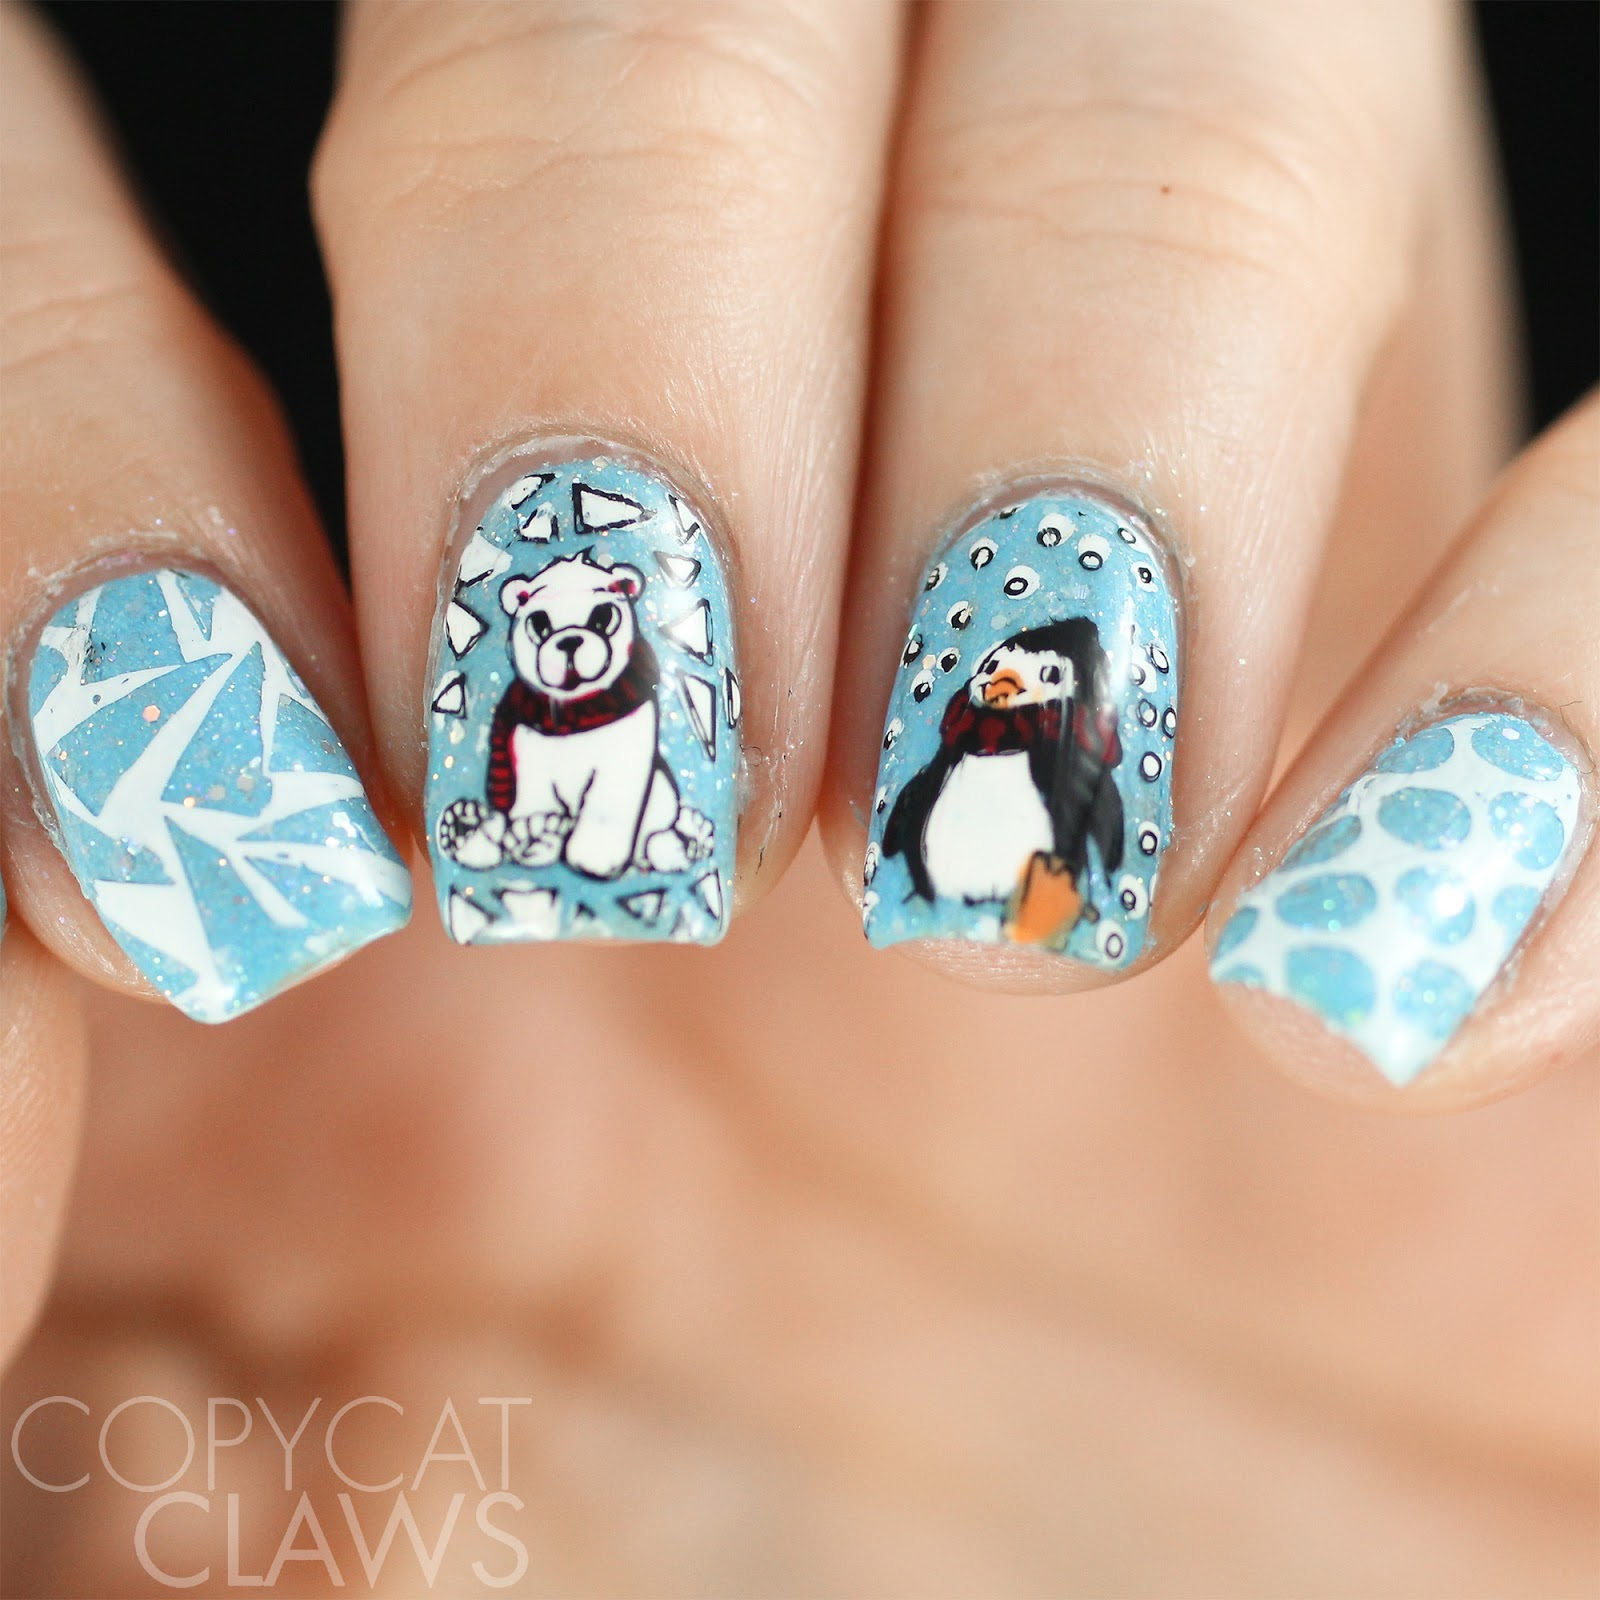 Copycat Claws: The Nail Challenge Collaborative - Winter